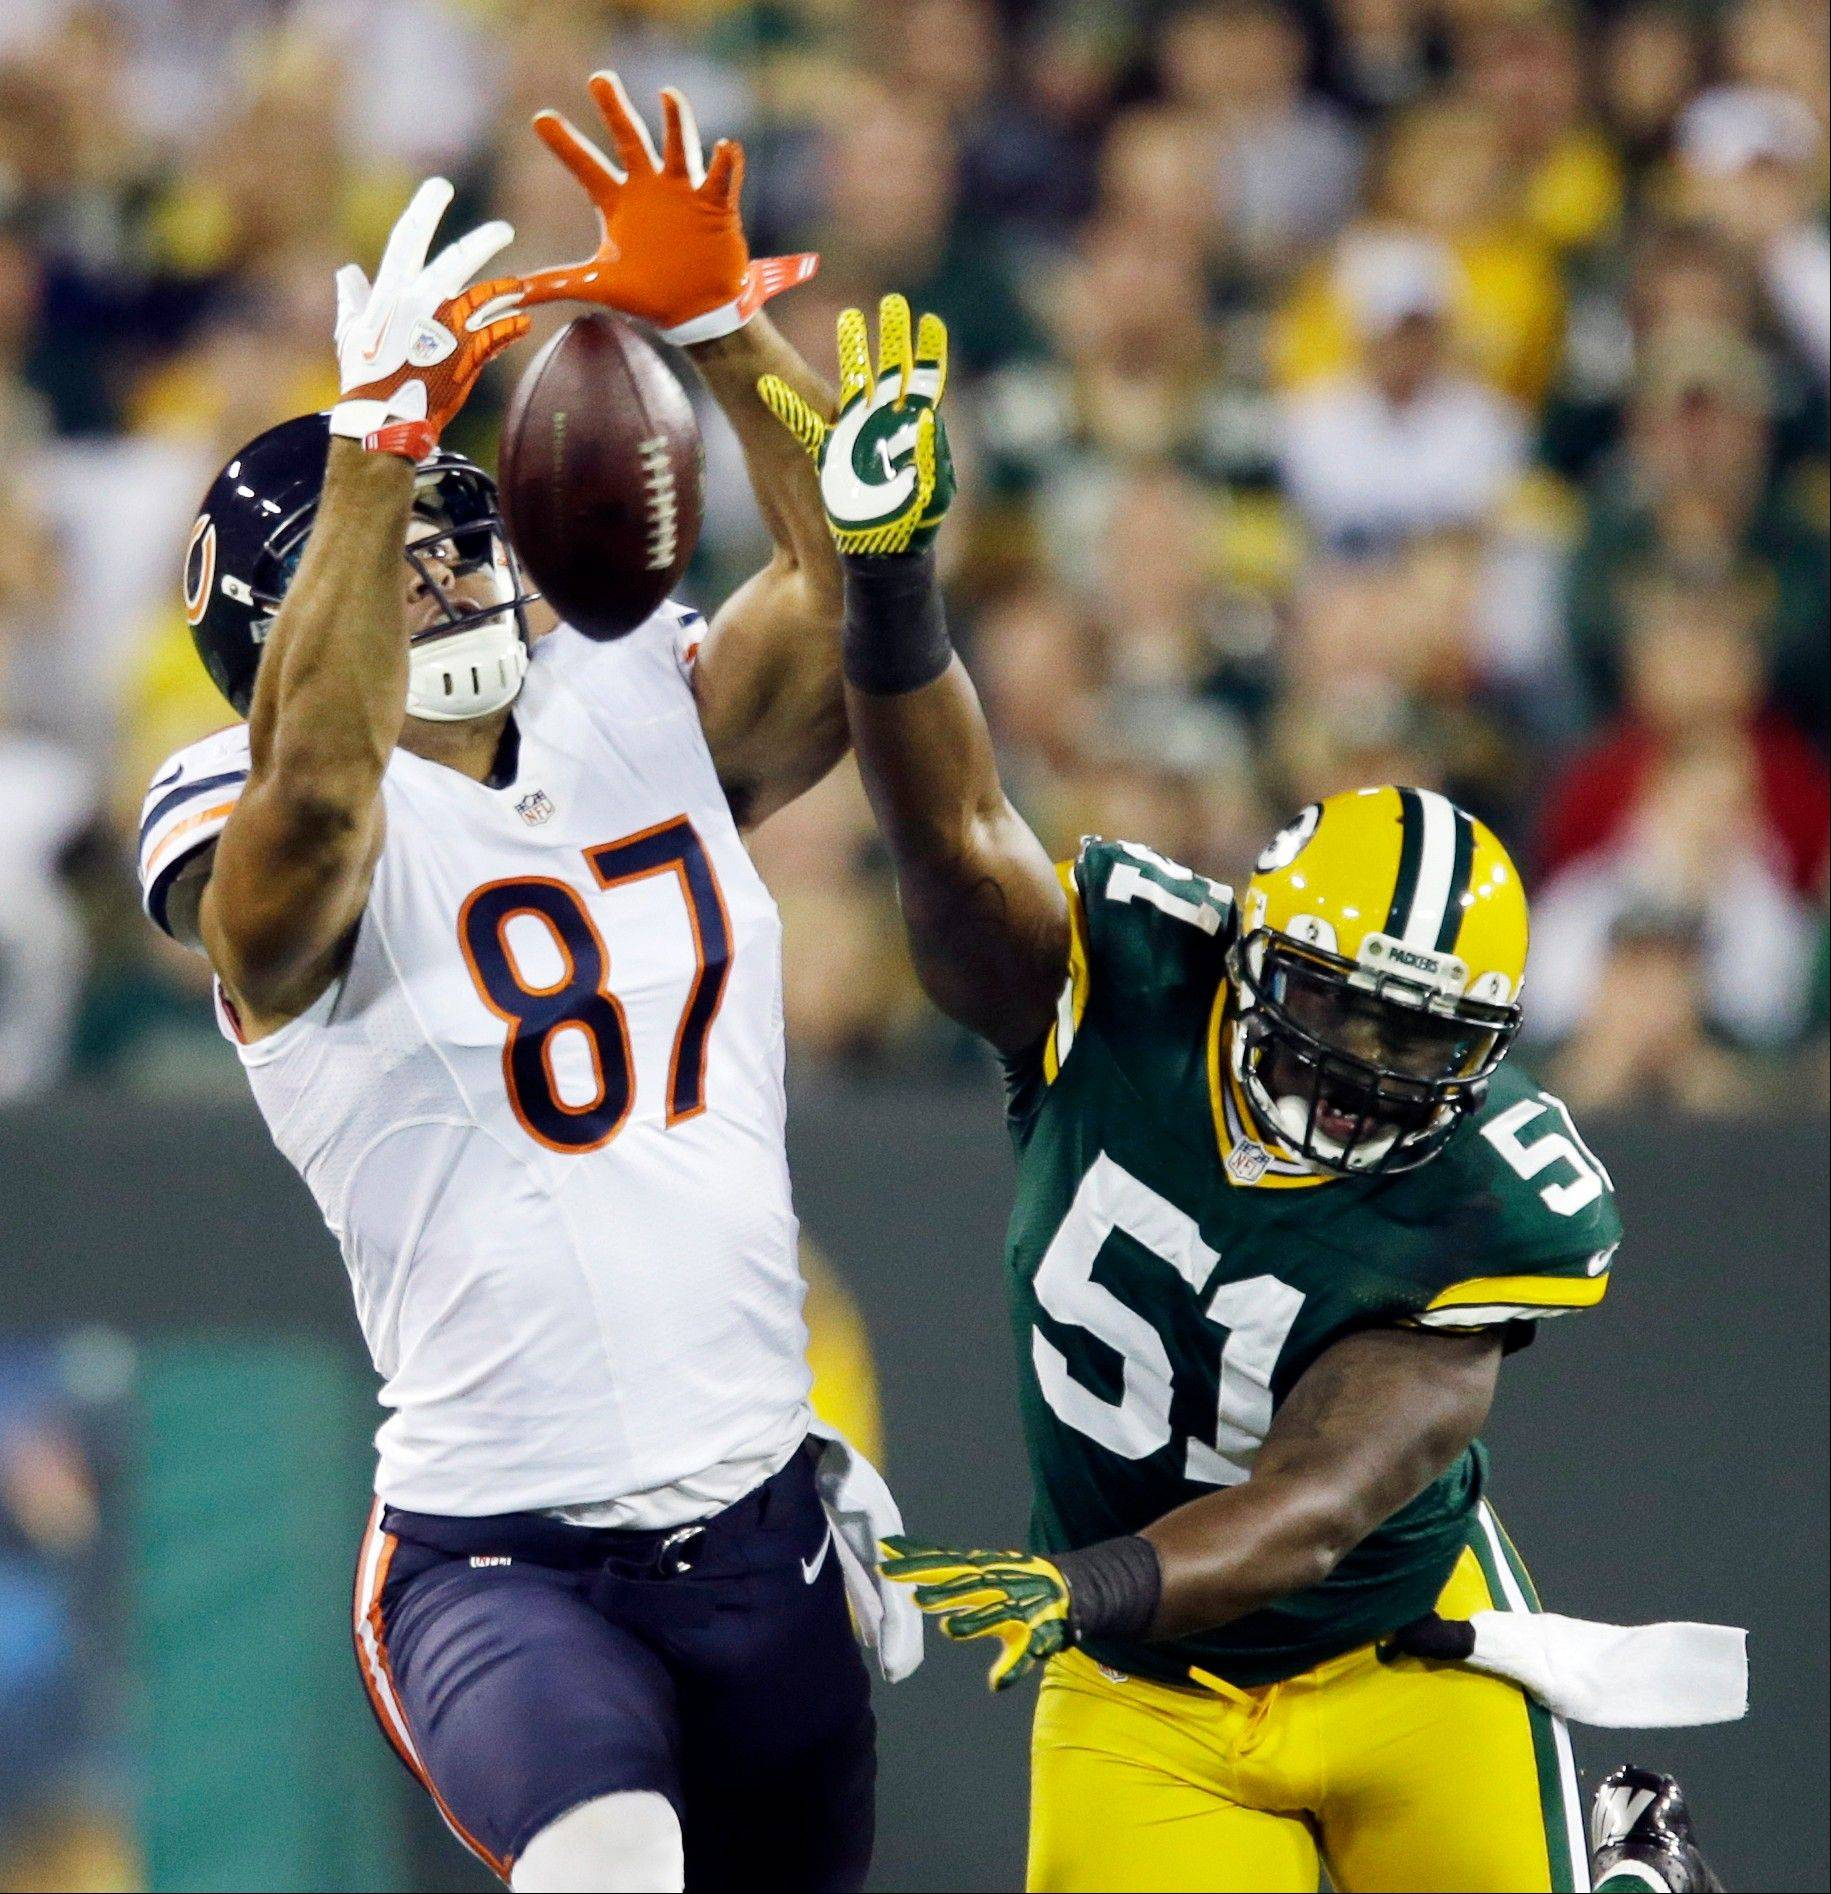 The Green Bay Packers' D.J. Smith breaks up a pass intended for Bears tight end Kellen Davis Thursday during the first half.